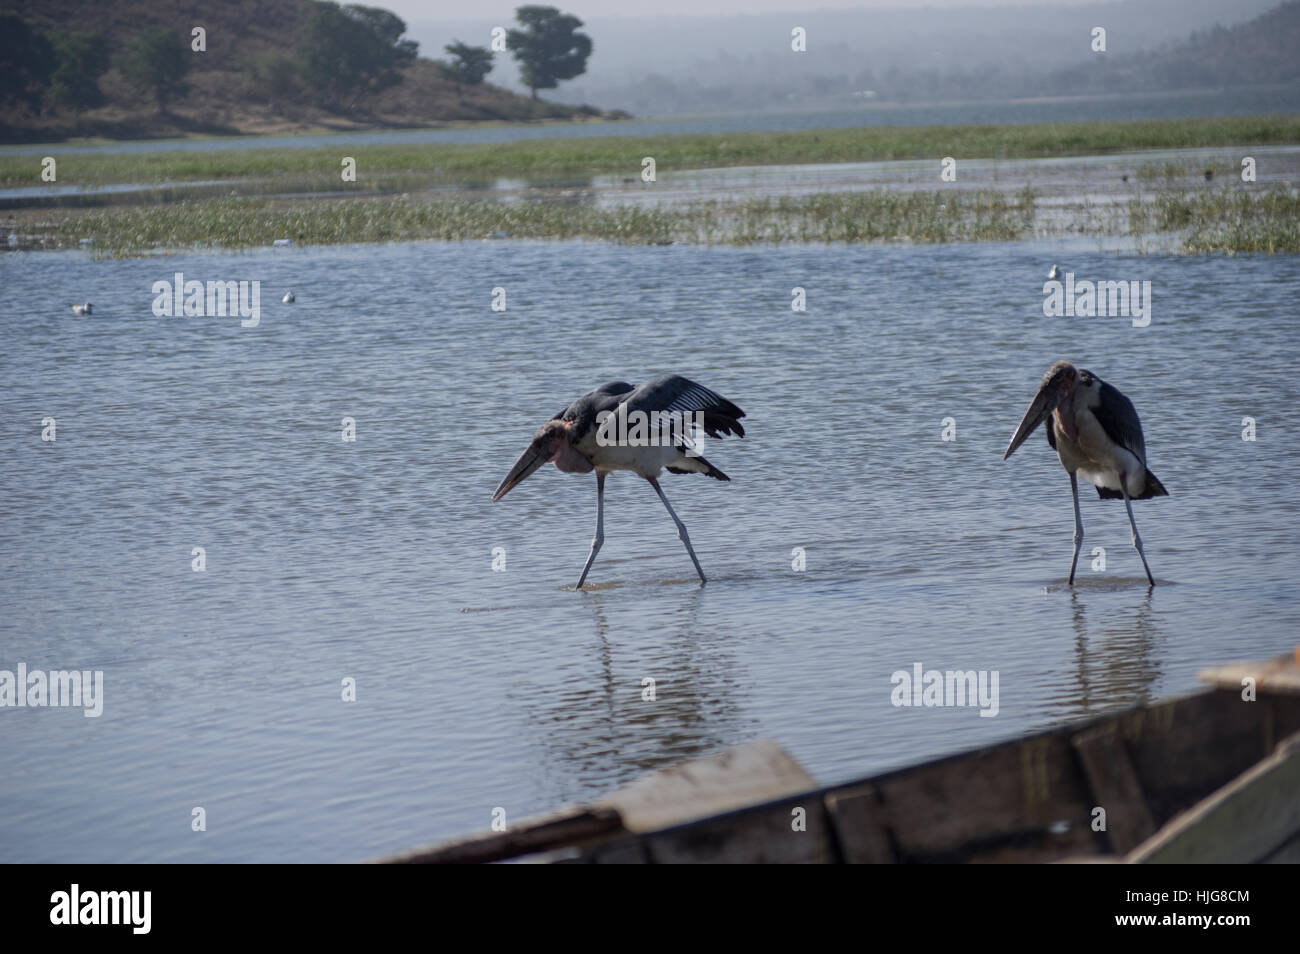 Two marabou storks scavenging for fish at Hawassa Lake, Ethiopia - Stock Image